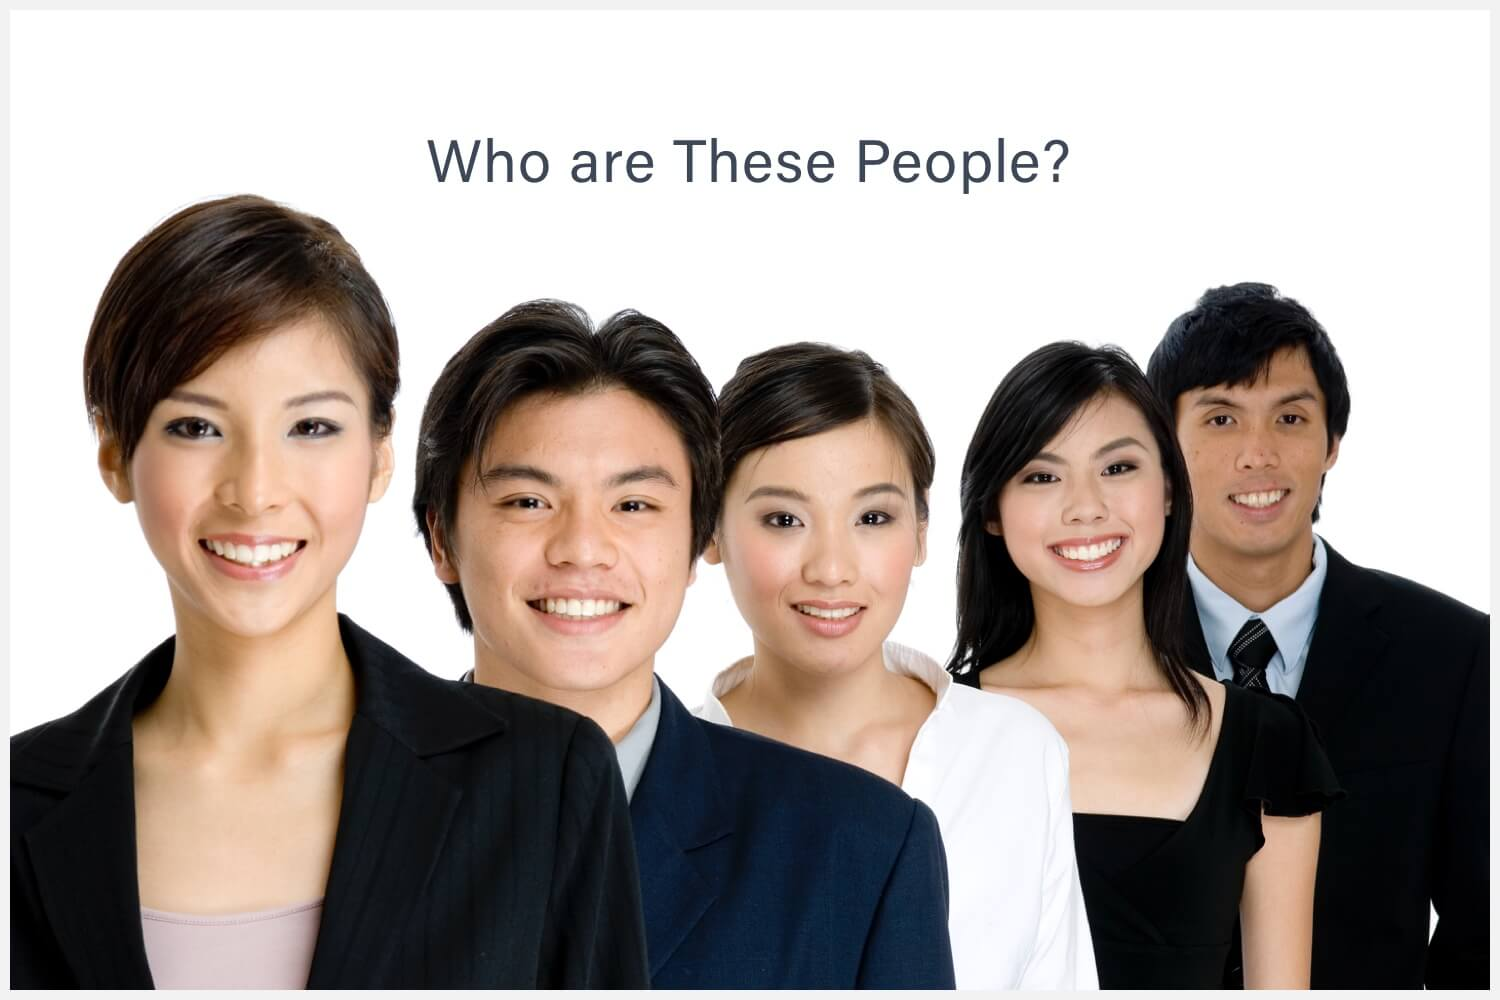 Close-up of 5 Asian smiling women and men in a row